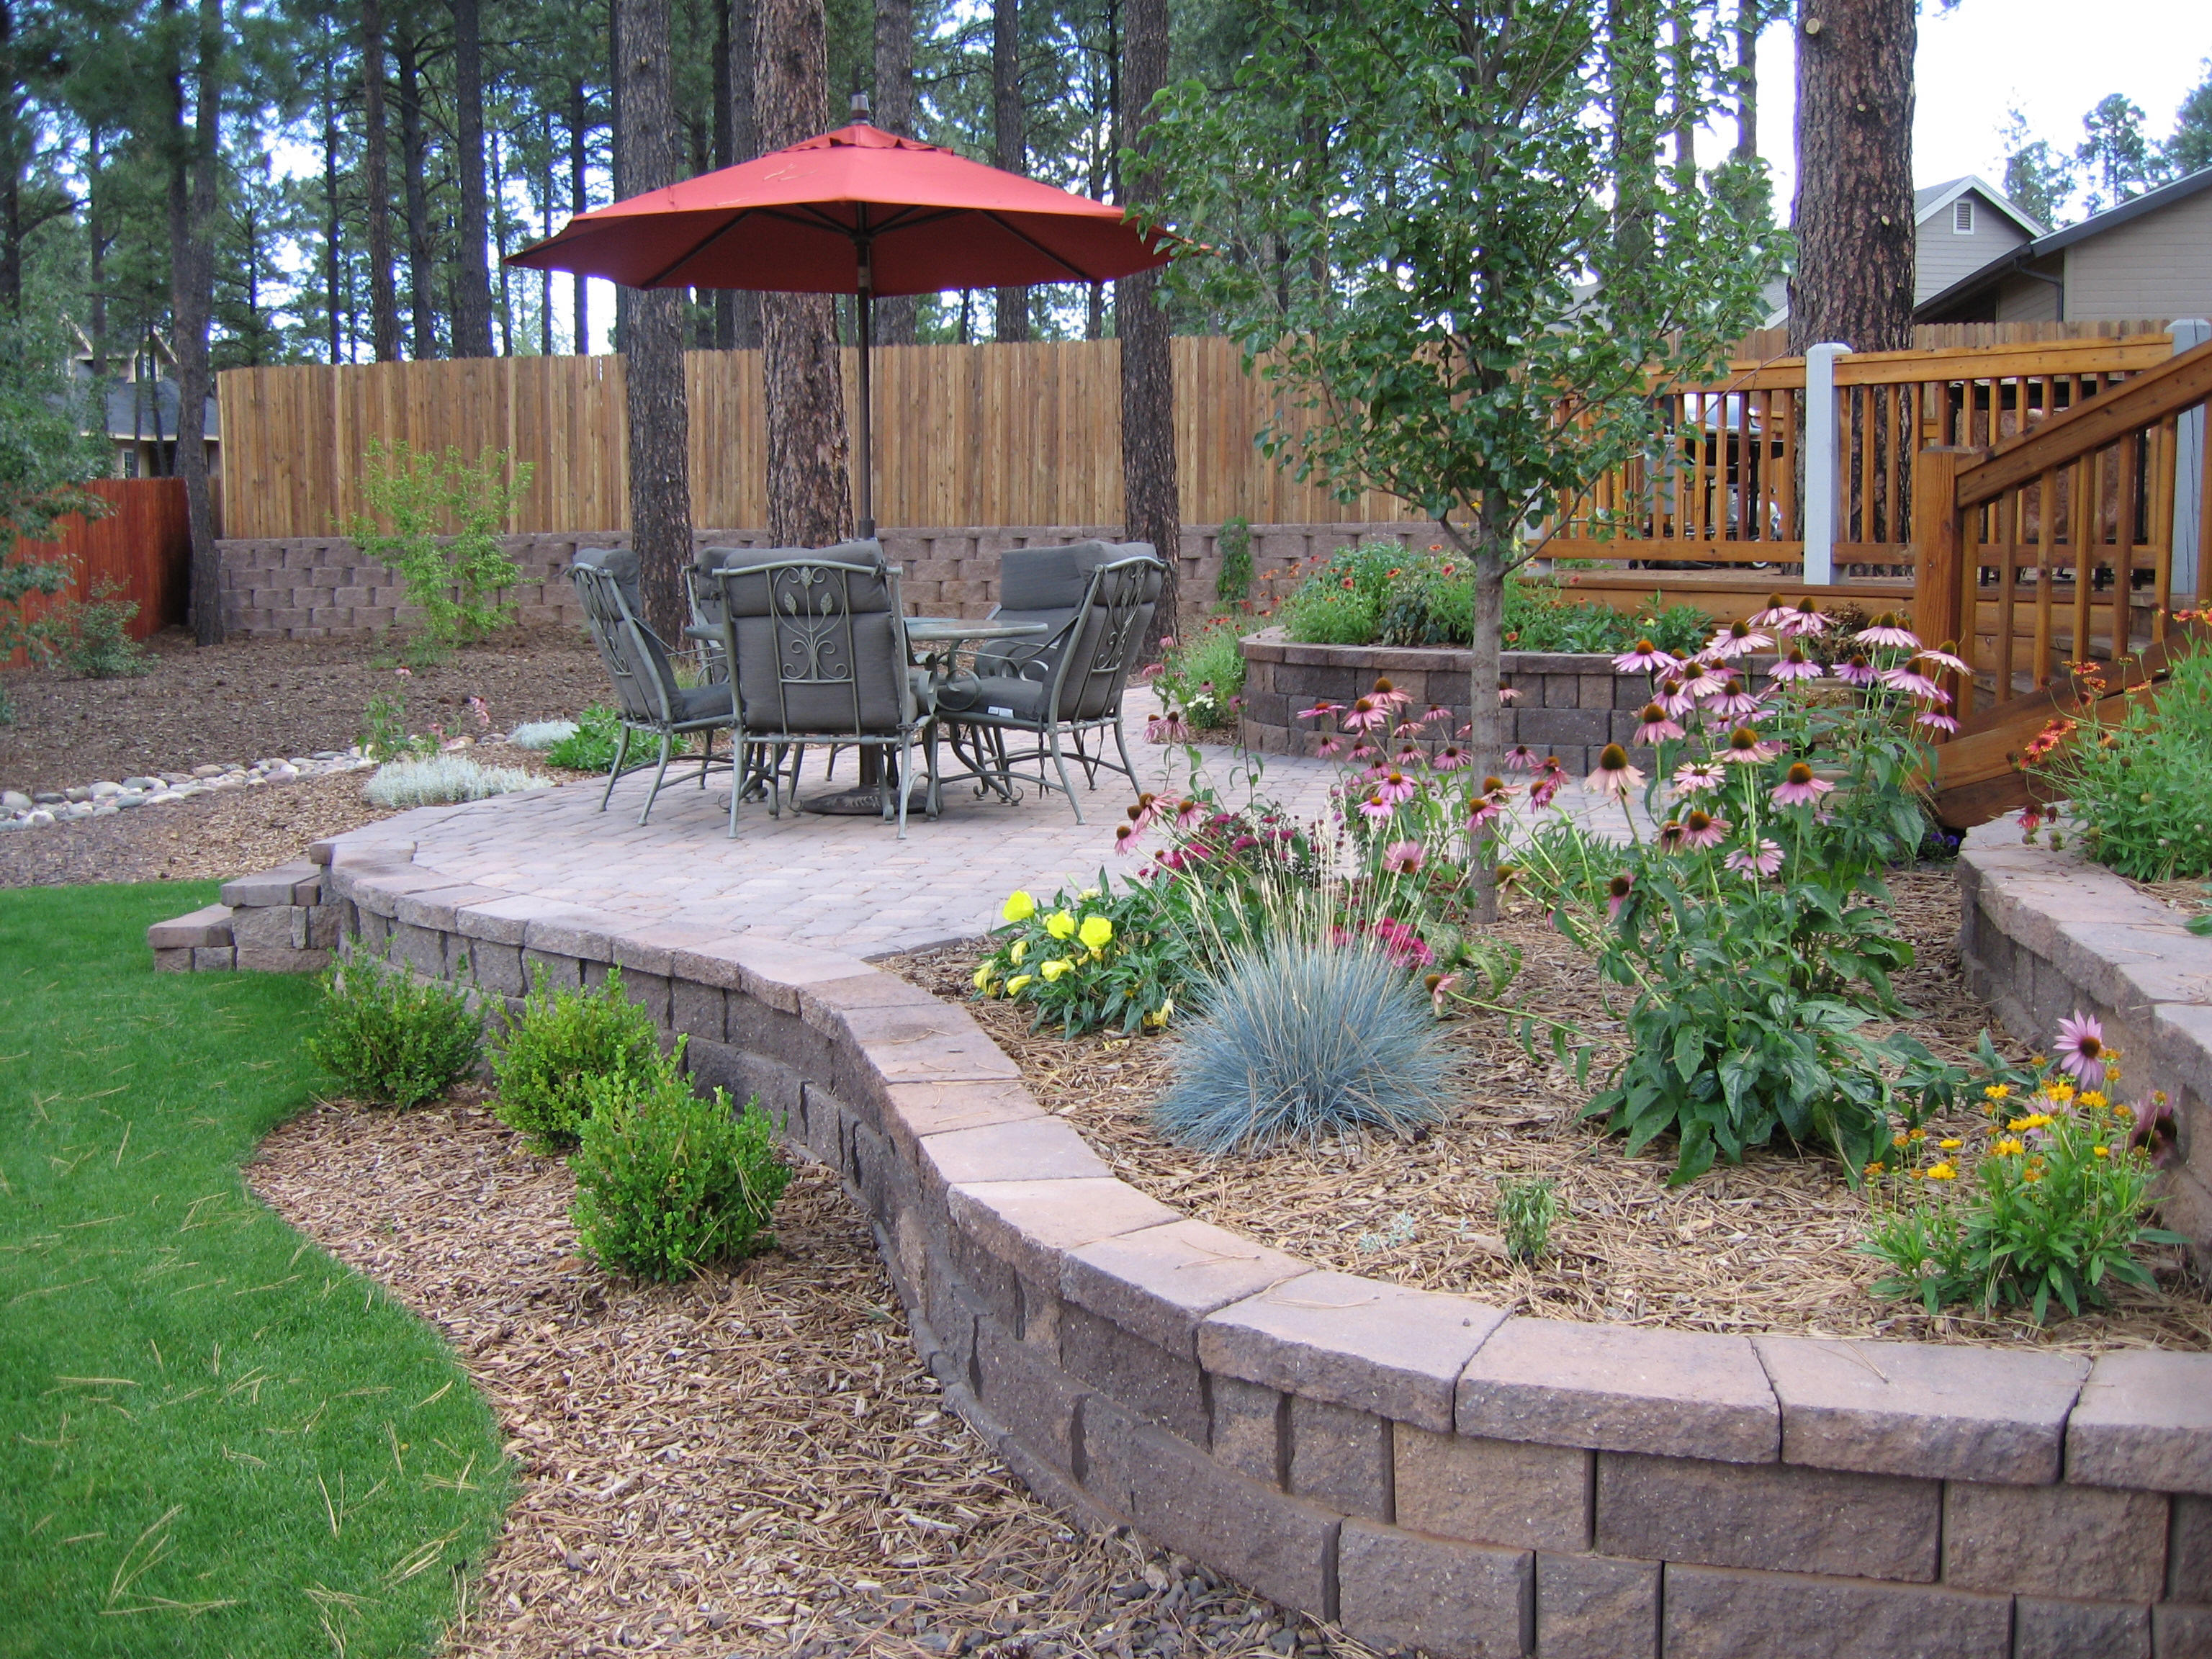 Backyard Landscape Design Ideas simple backyard landscaping no low simple backyard landscaping no low budget ideas pictures design decors lawn Backyard Landscaping Ideas With Rocks Simple Rock Garden Landscaping Designs Ideas Pictures And Diy Plans Backyard